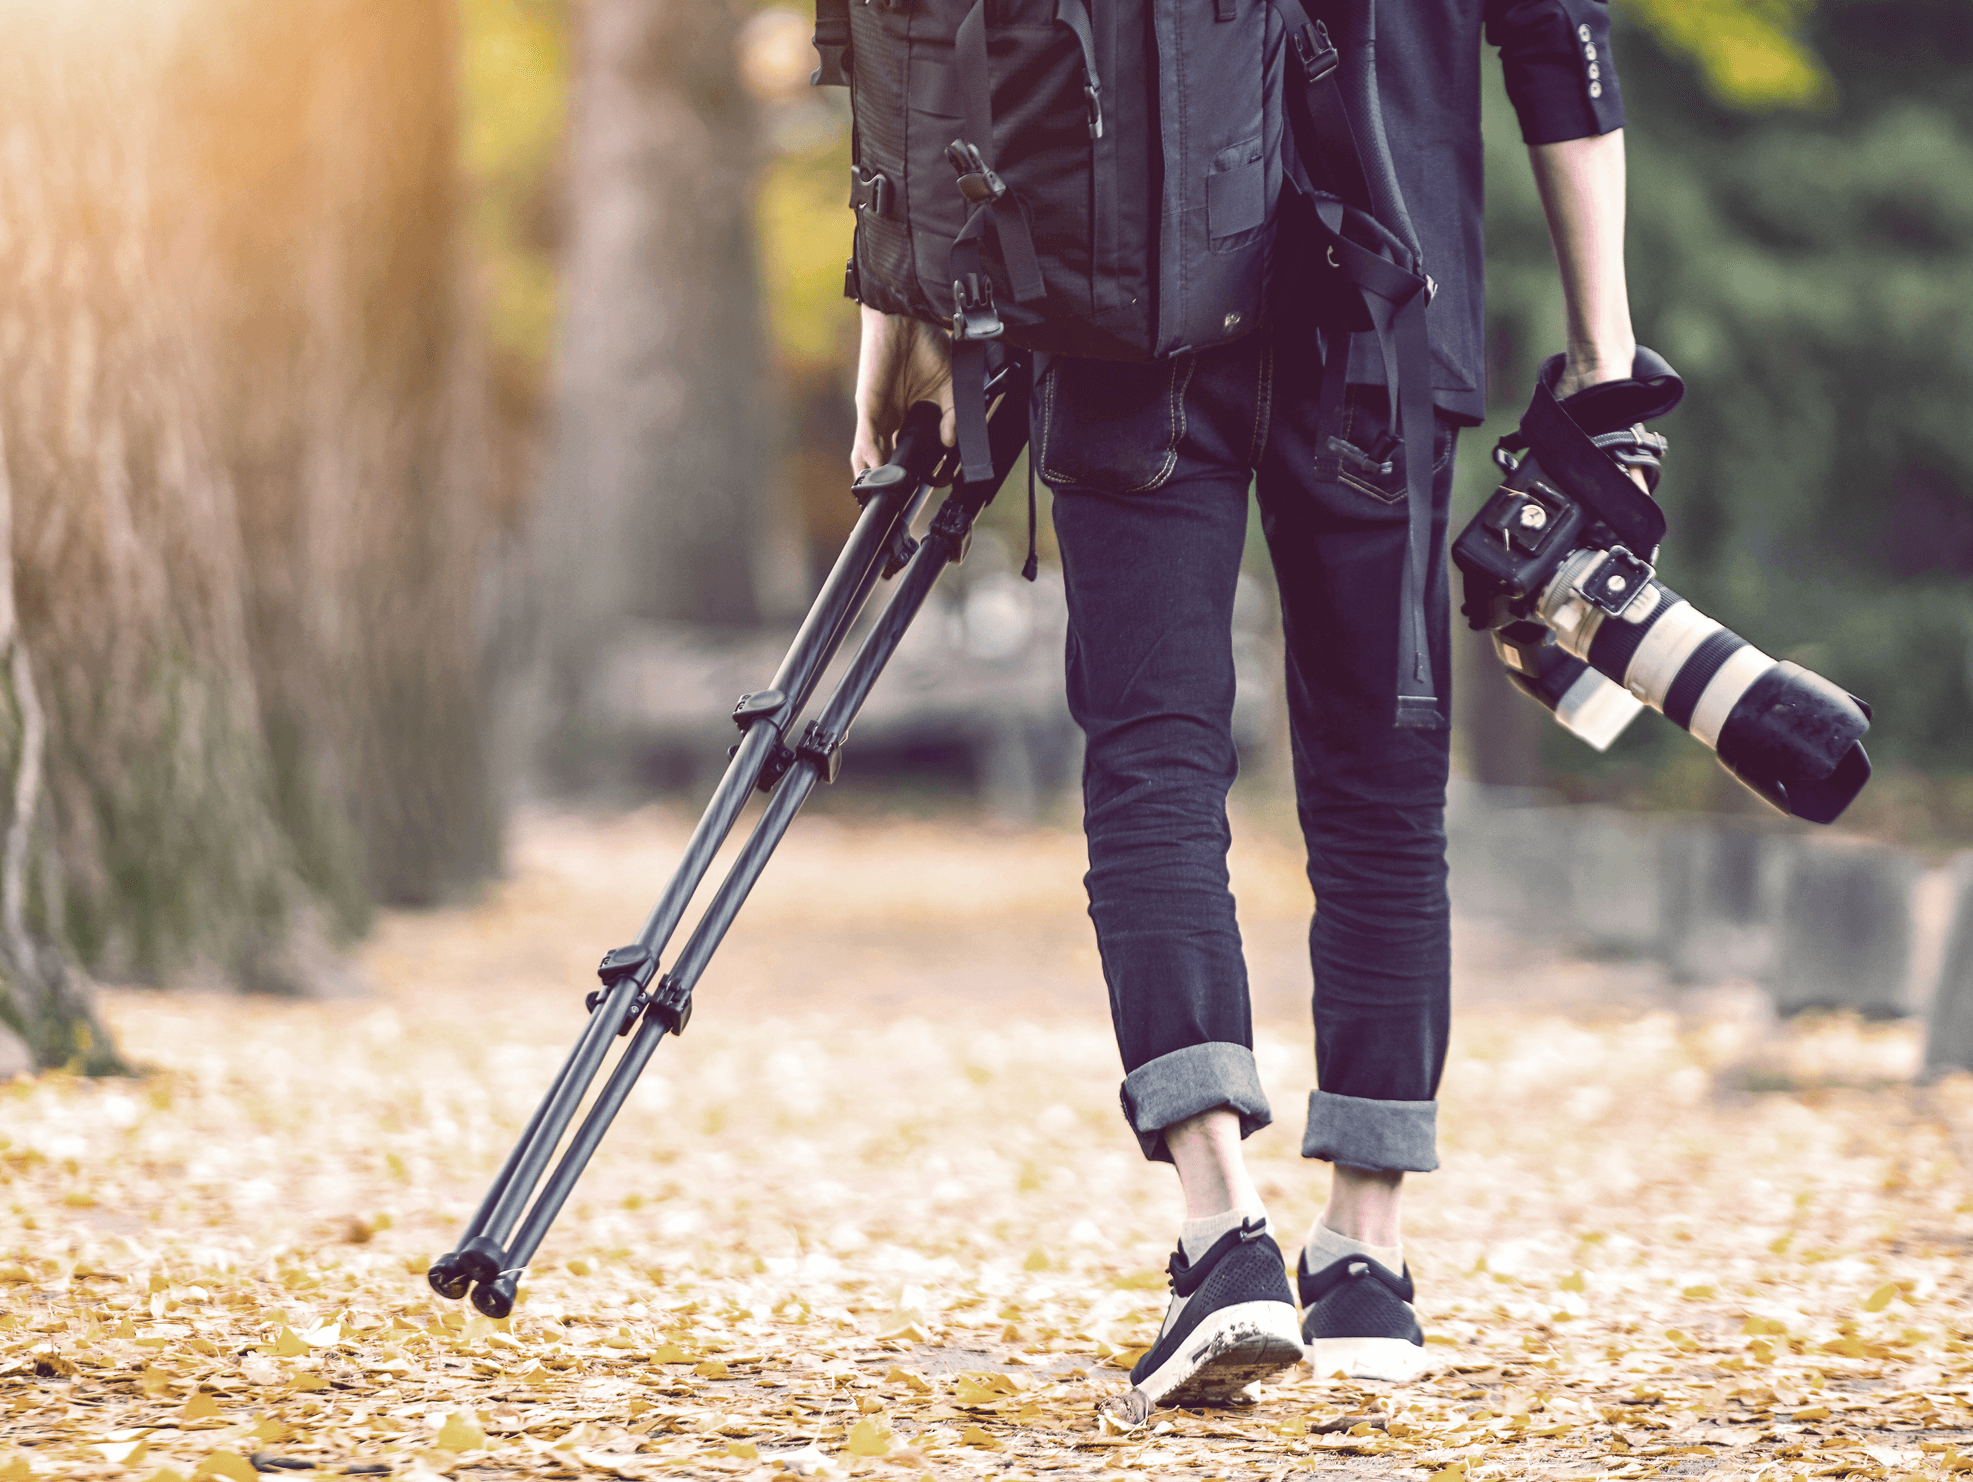 Commercial Photography vs. Hobby